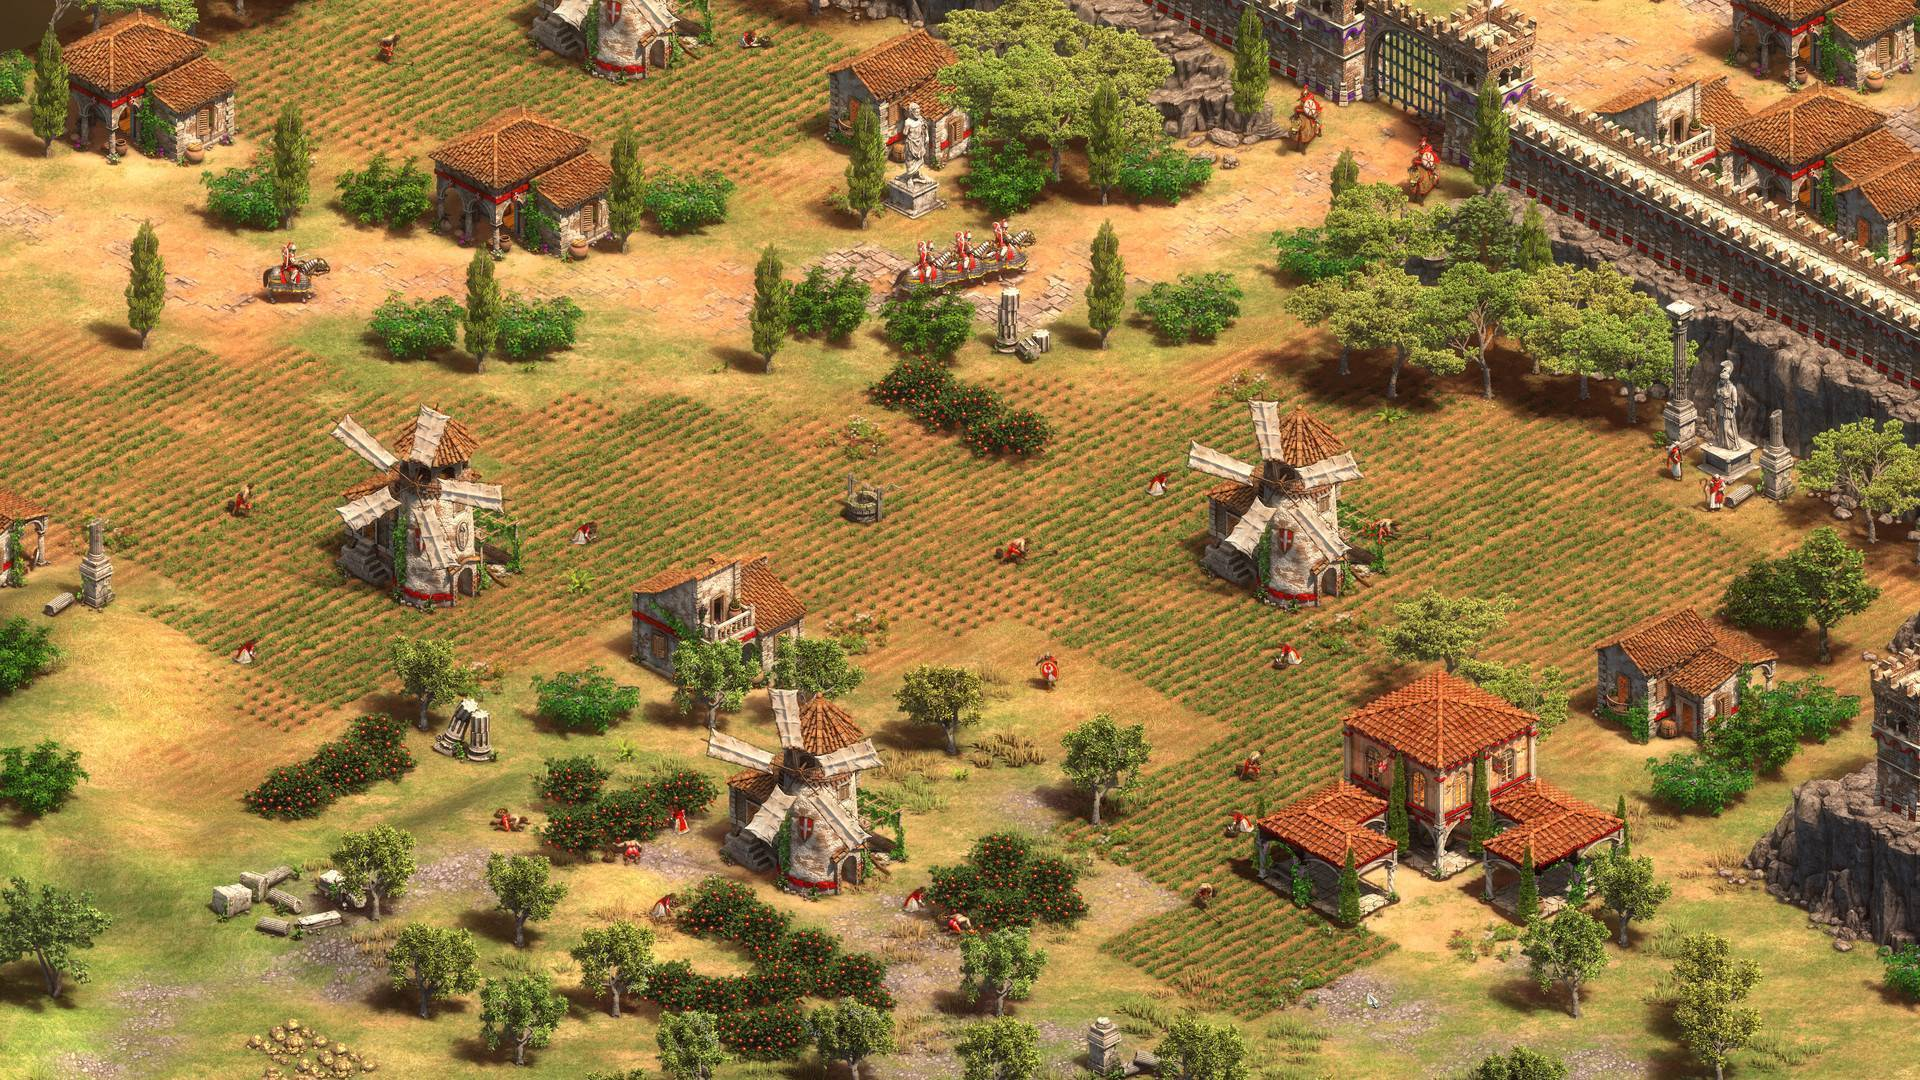 Título del artículo sobreAge of Empires II: Definitive Edition